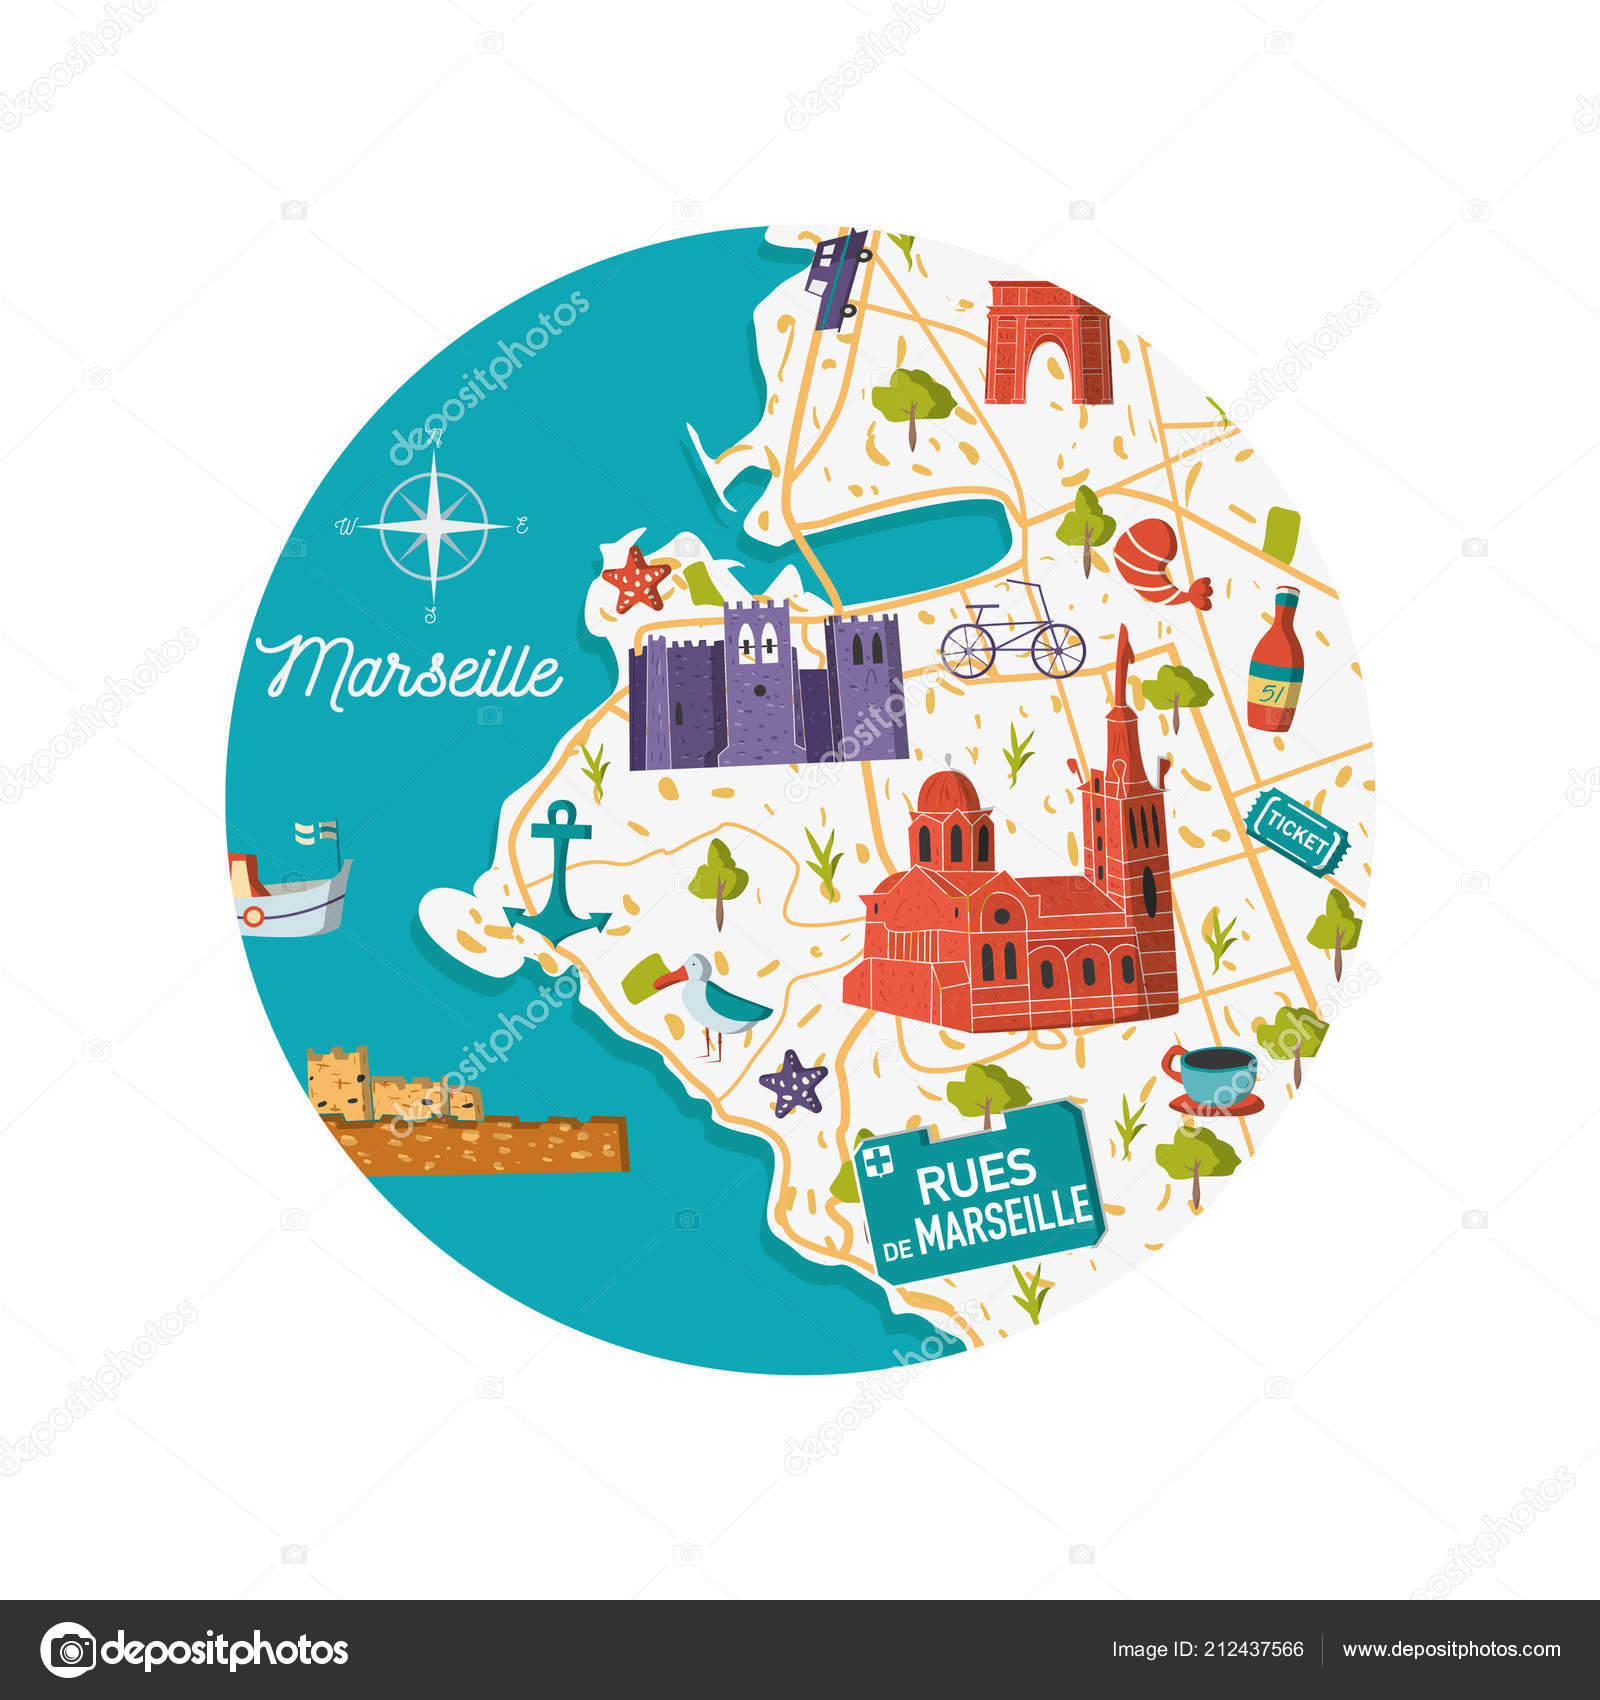 France Marseille Vector City Map Illustration Cartoon Sightseeing